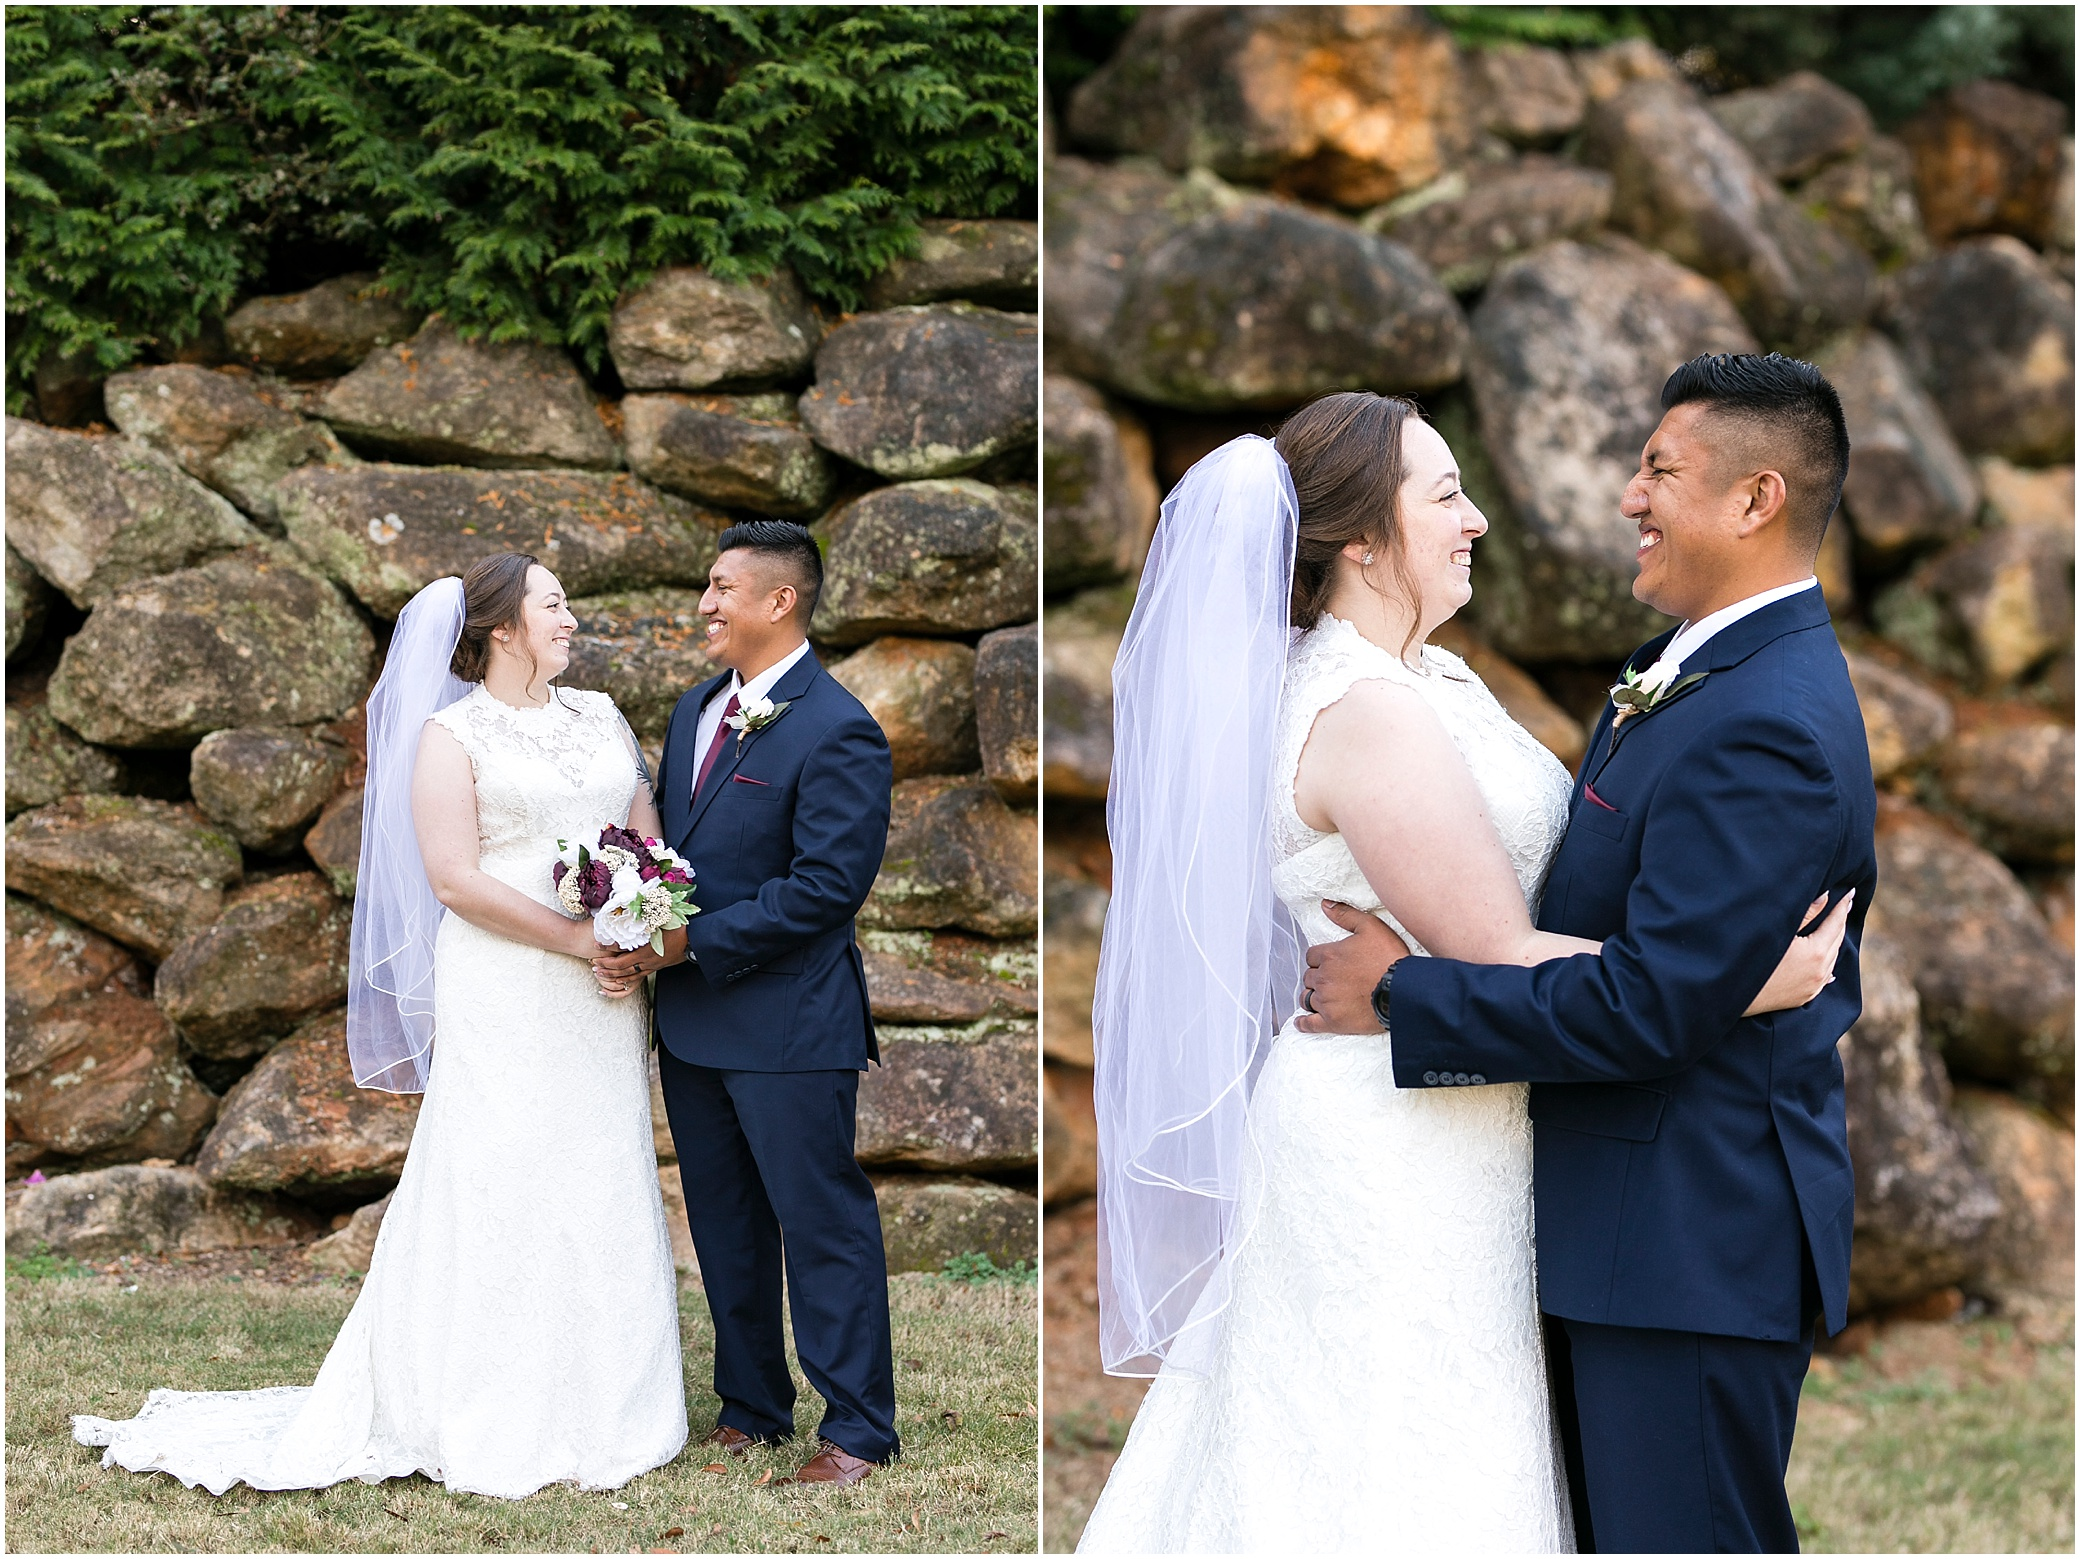 Fall wedding at the Larkin's Sawmill in Greenville, South Carolina, destination wedding photographer